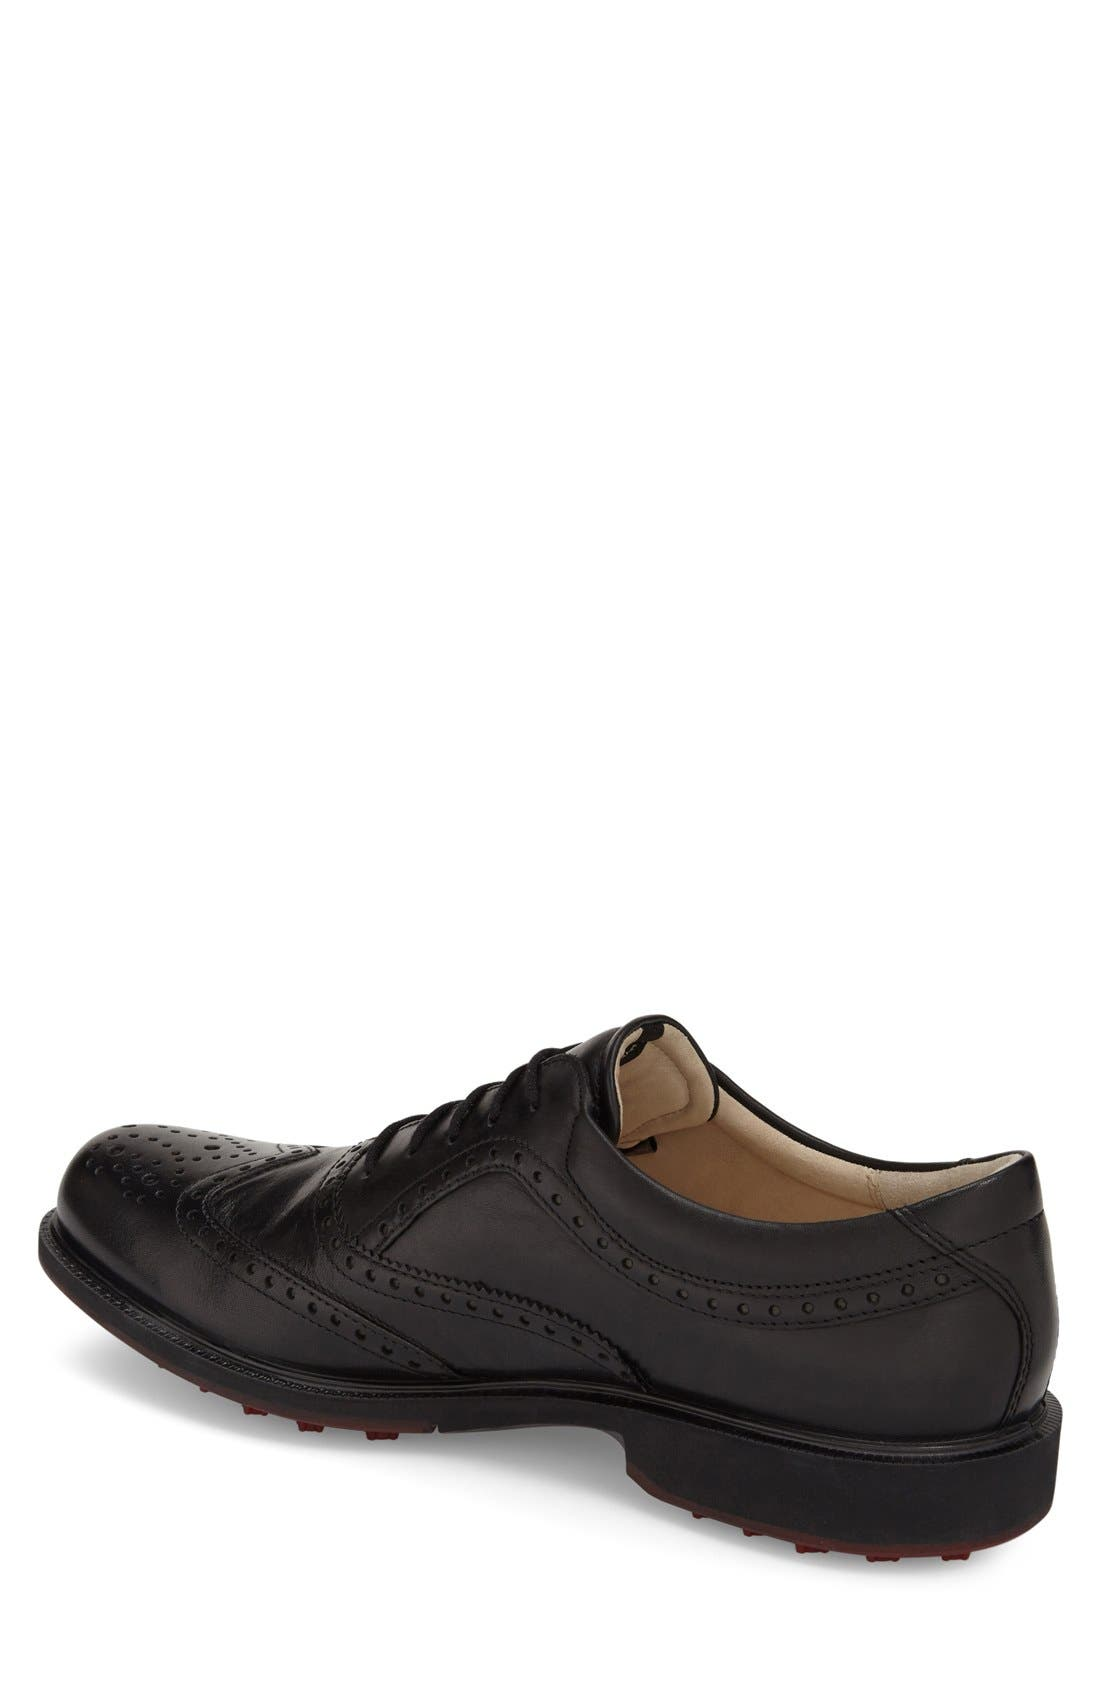 'Tour' Hybrid Wingtip Golf Shoe,                             Alternate thumbnail 4, color,                             011